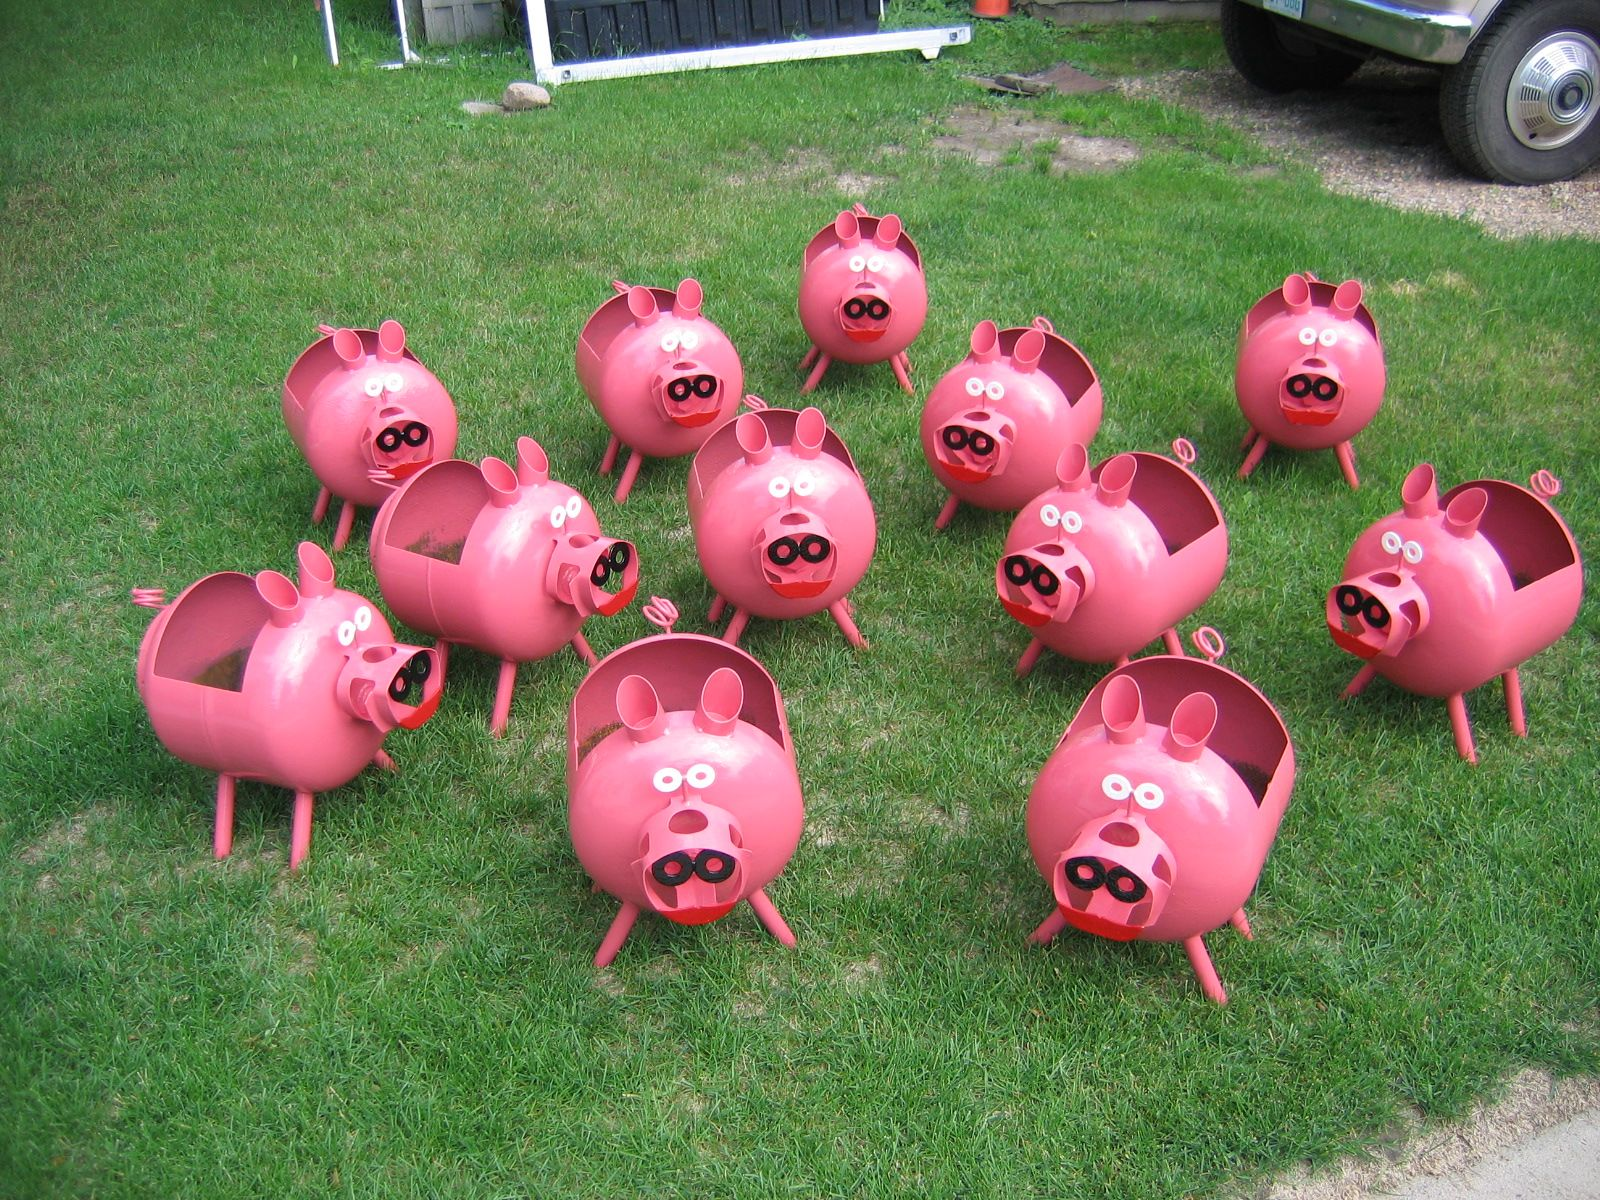 what to do with all those empty propane tanks in my backyard